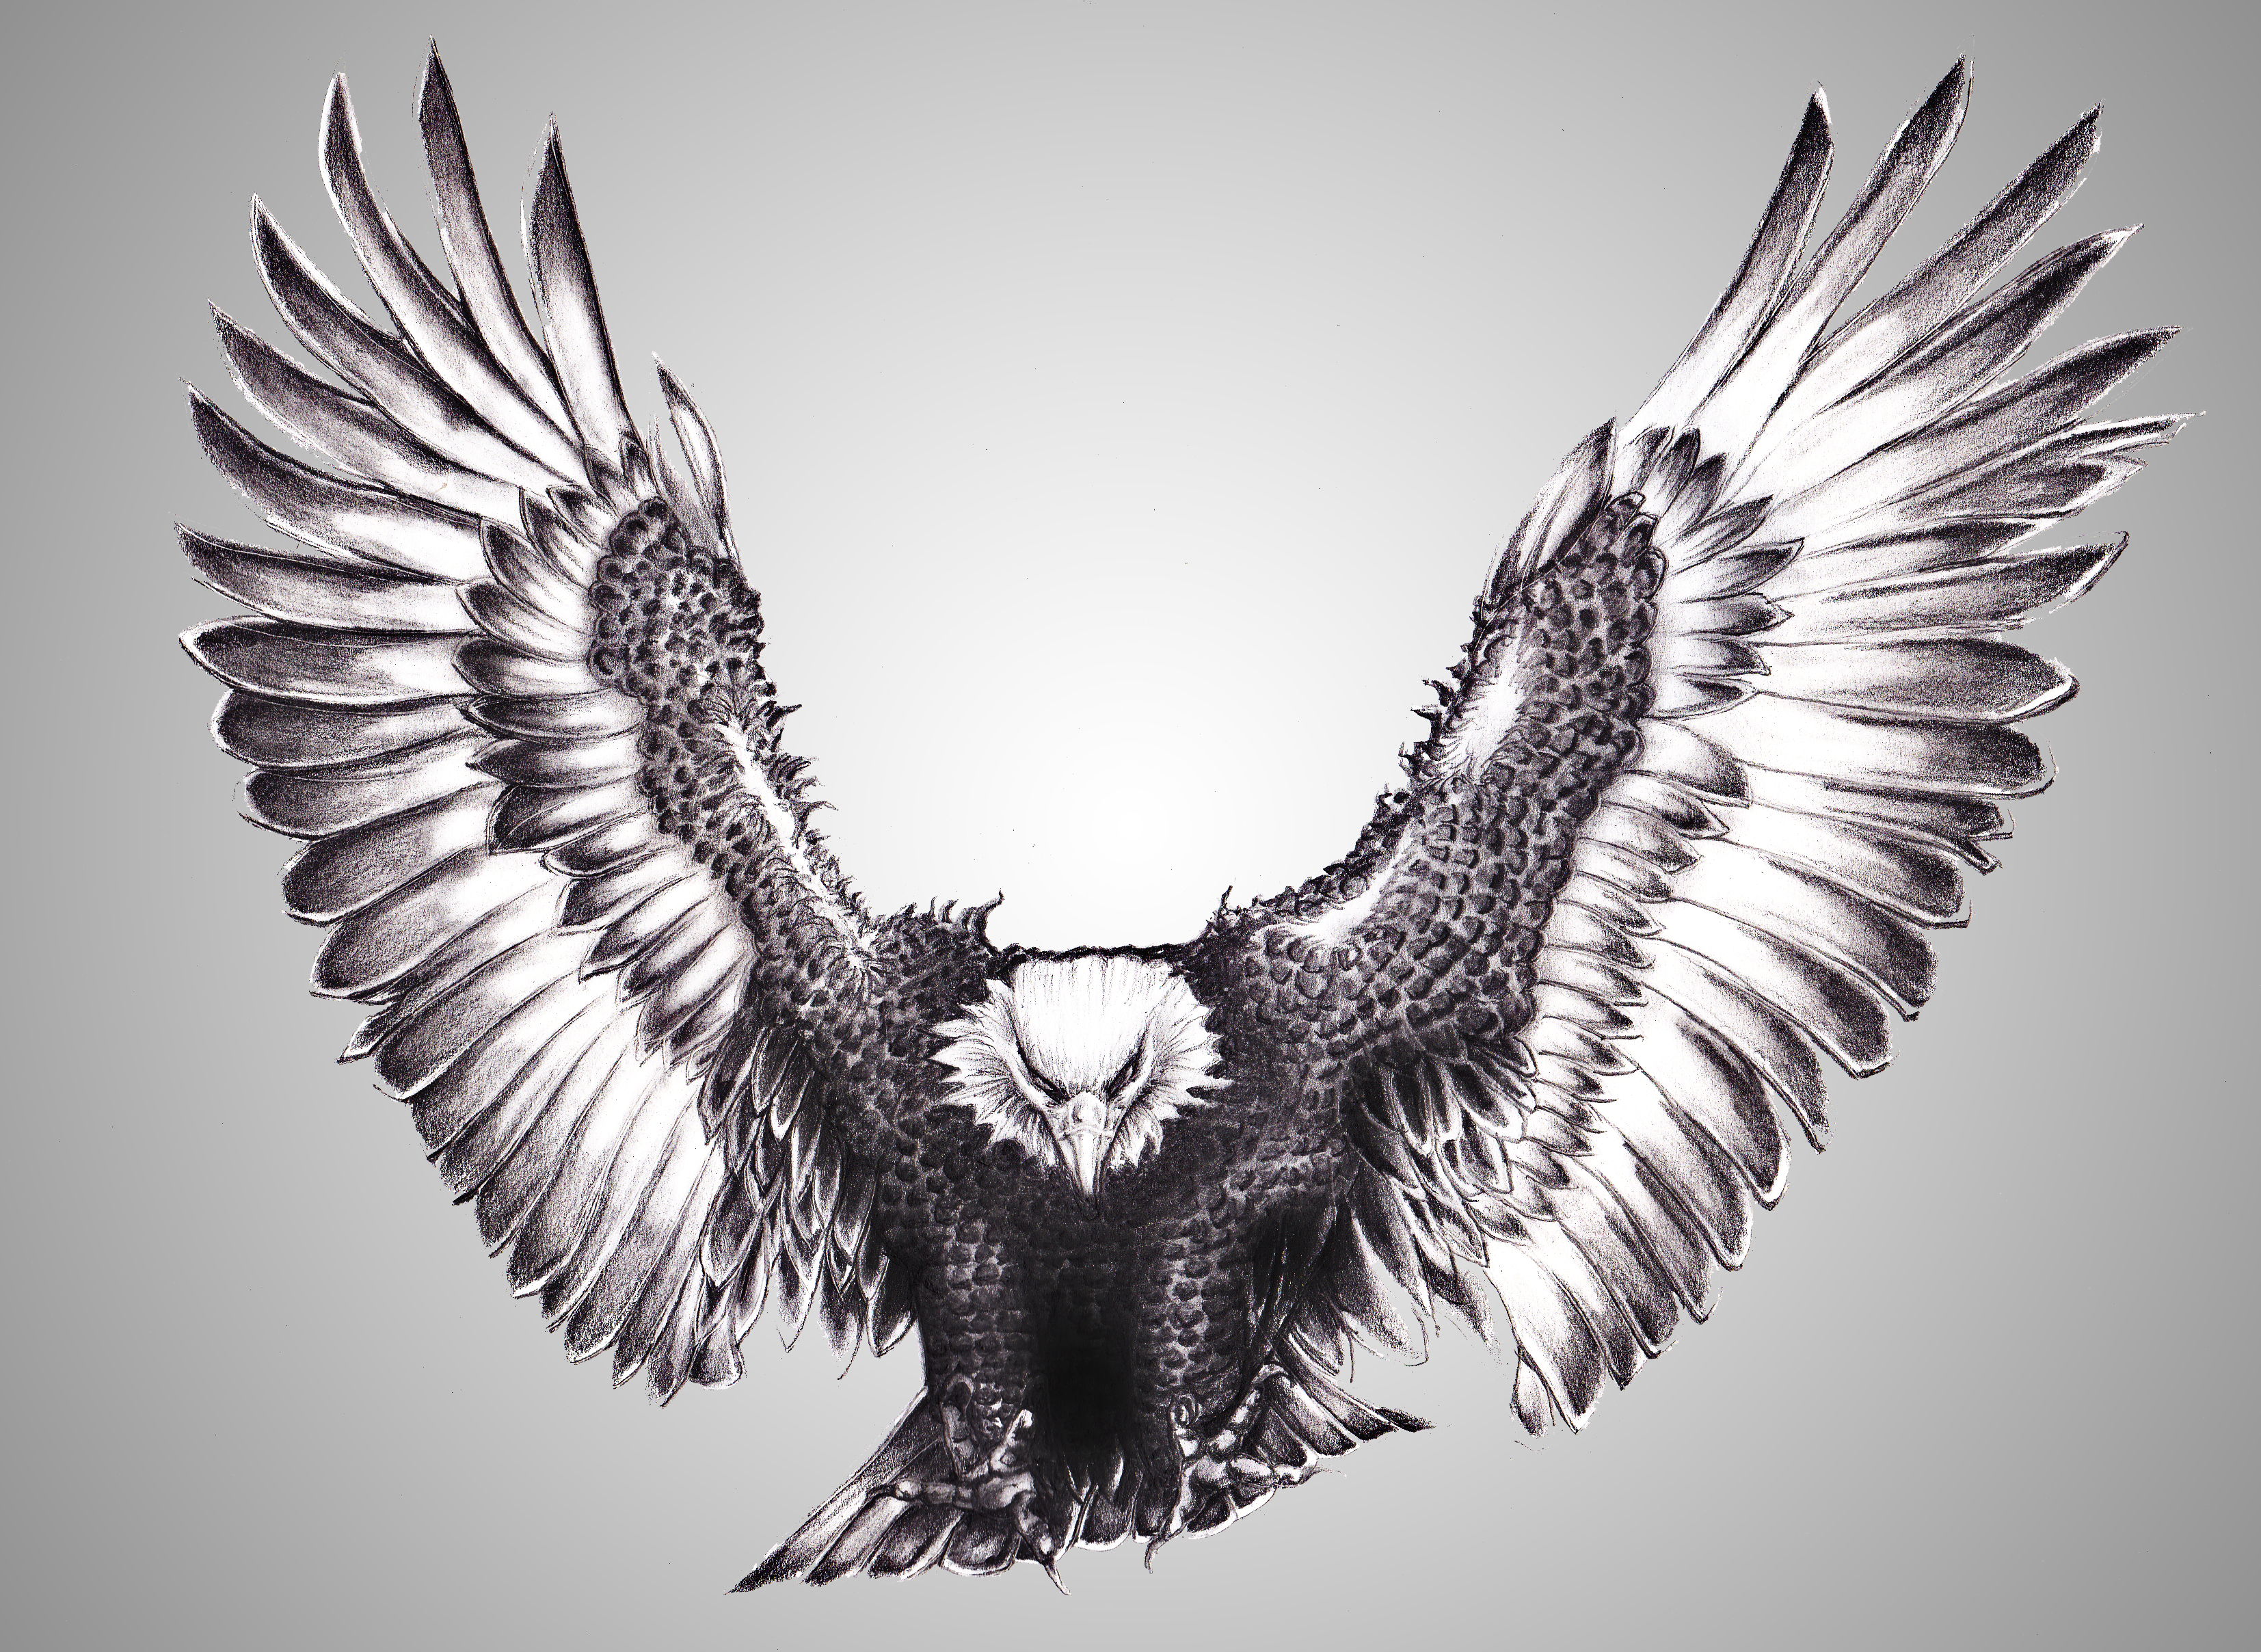 flying eagle drawings in pencil